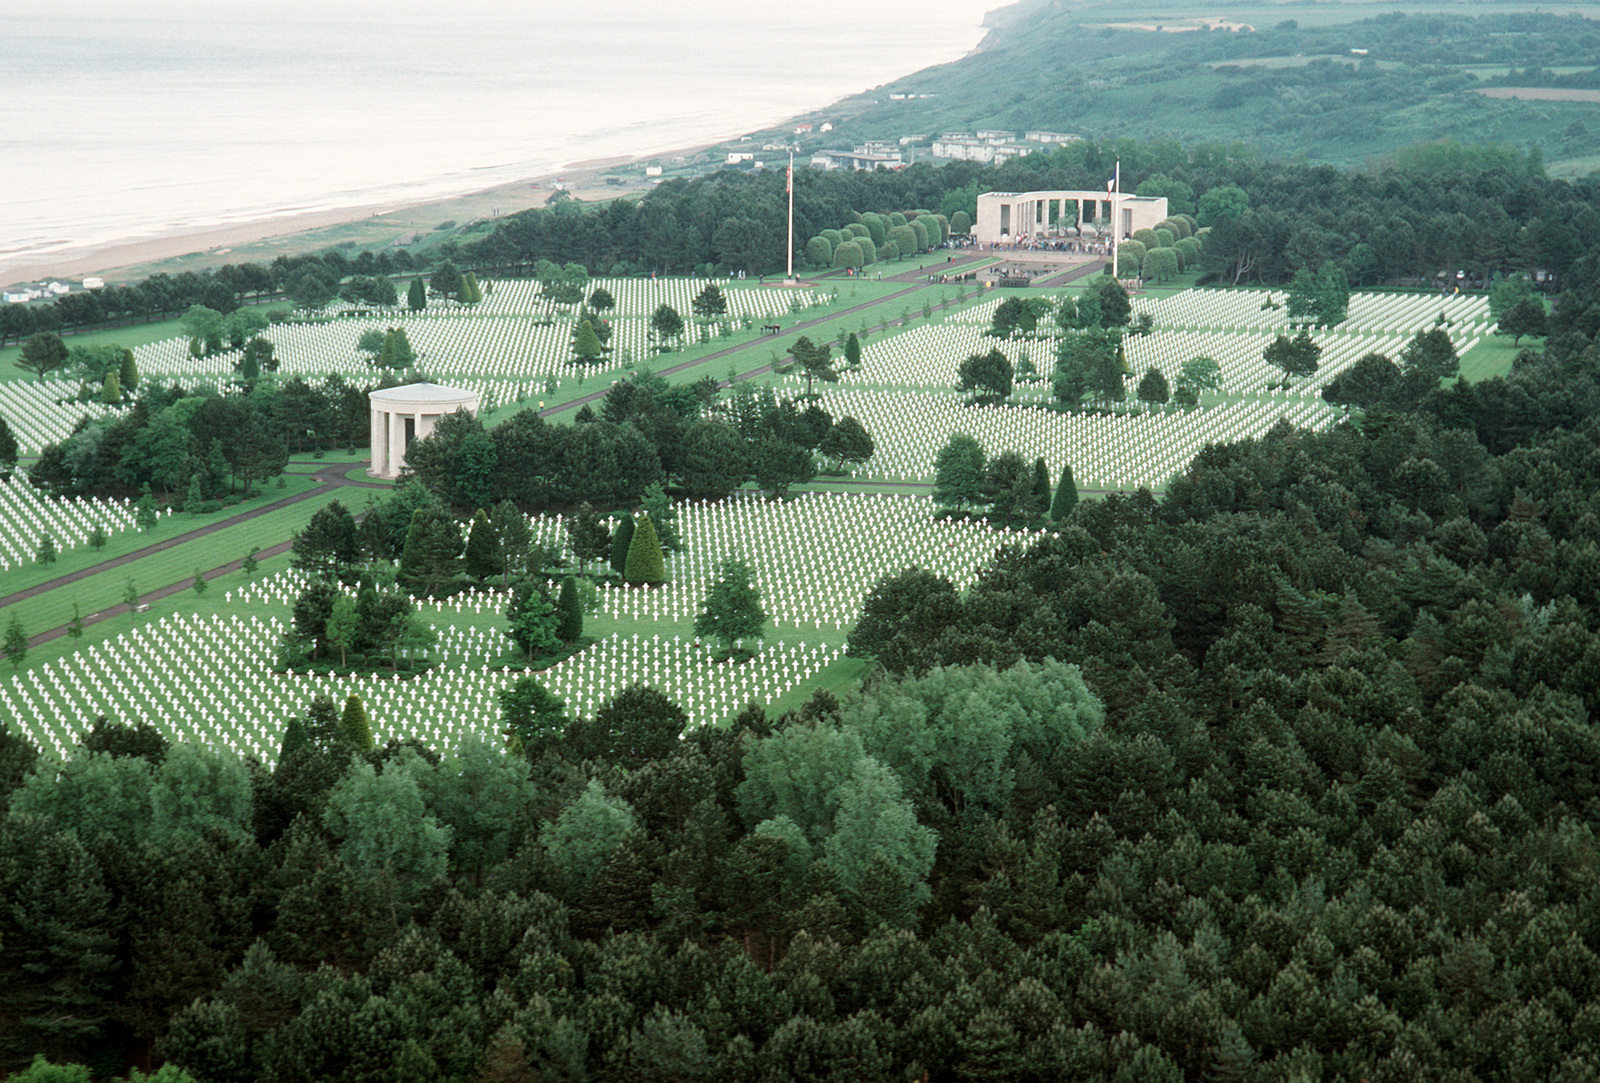 A view of the Normandy American Cemetery. The cemetery overlooks Omaha Beach, one of the beaches used by Allied forces for the invasion of France during World War II